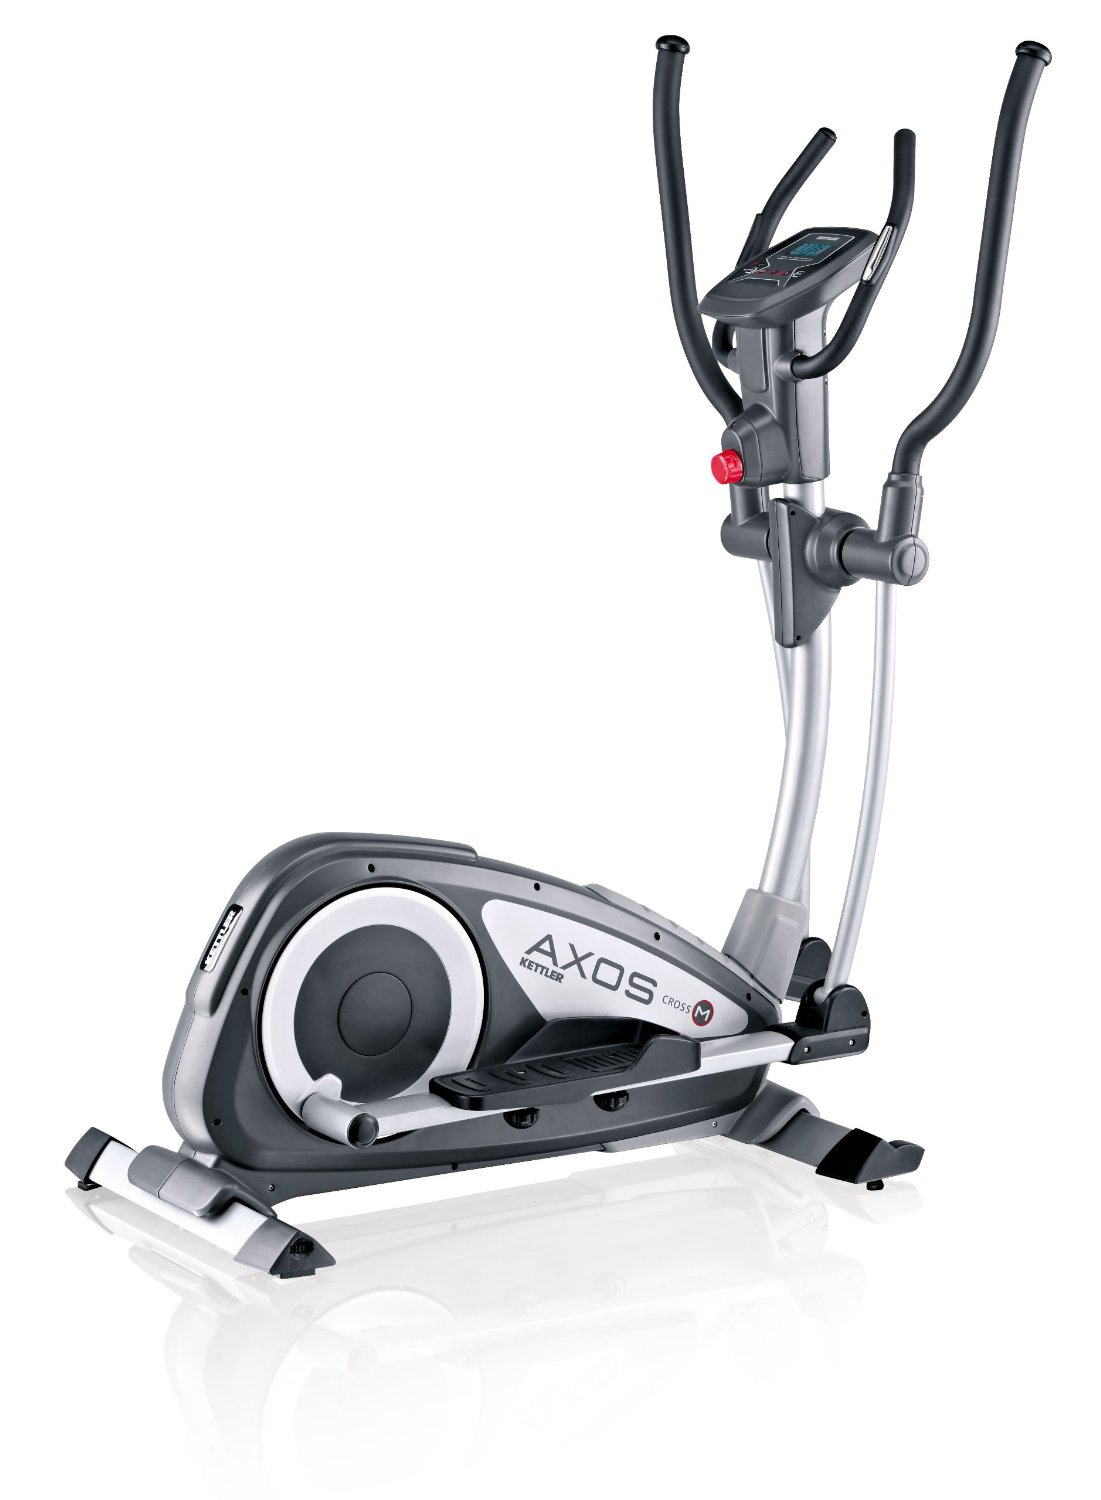 Kettler Fitness Kettler Cross M Cross Trainer Review Latest Fitness